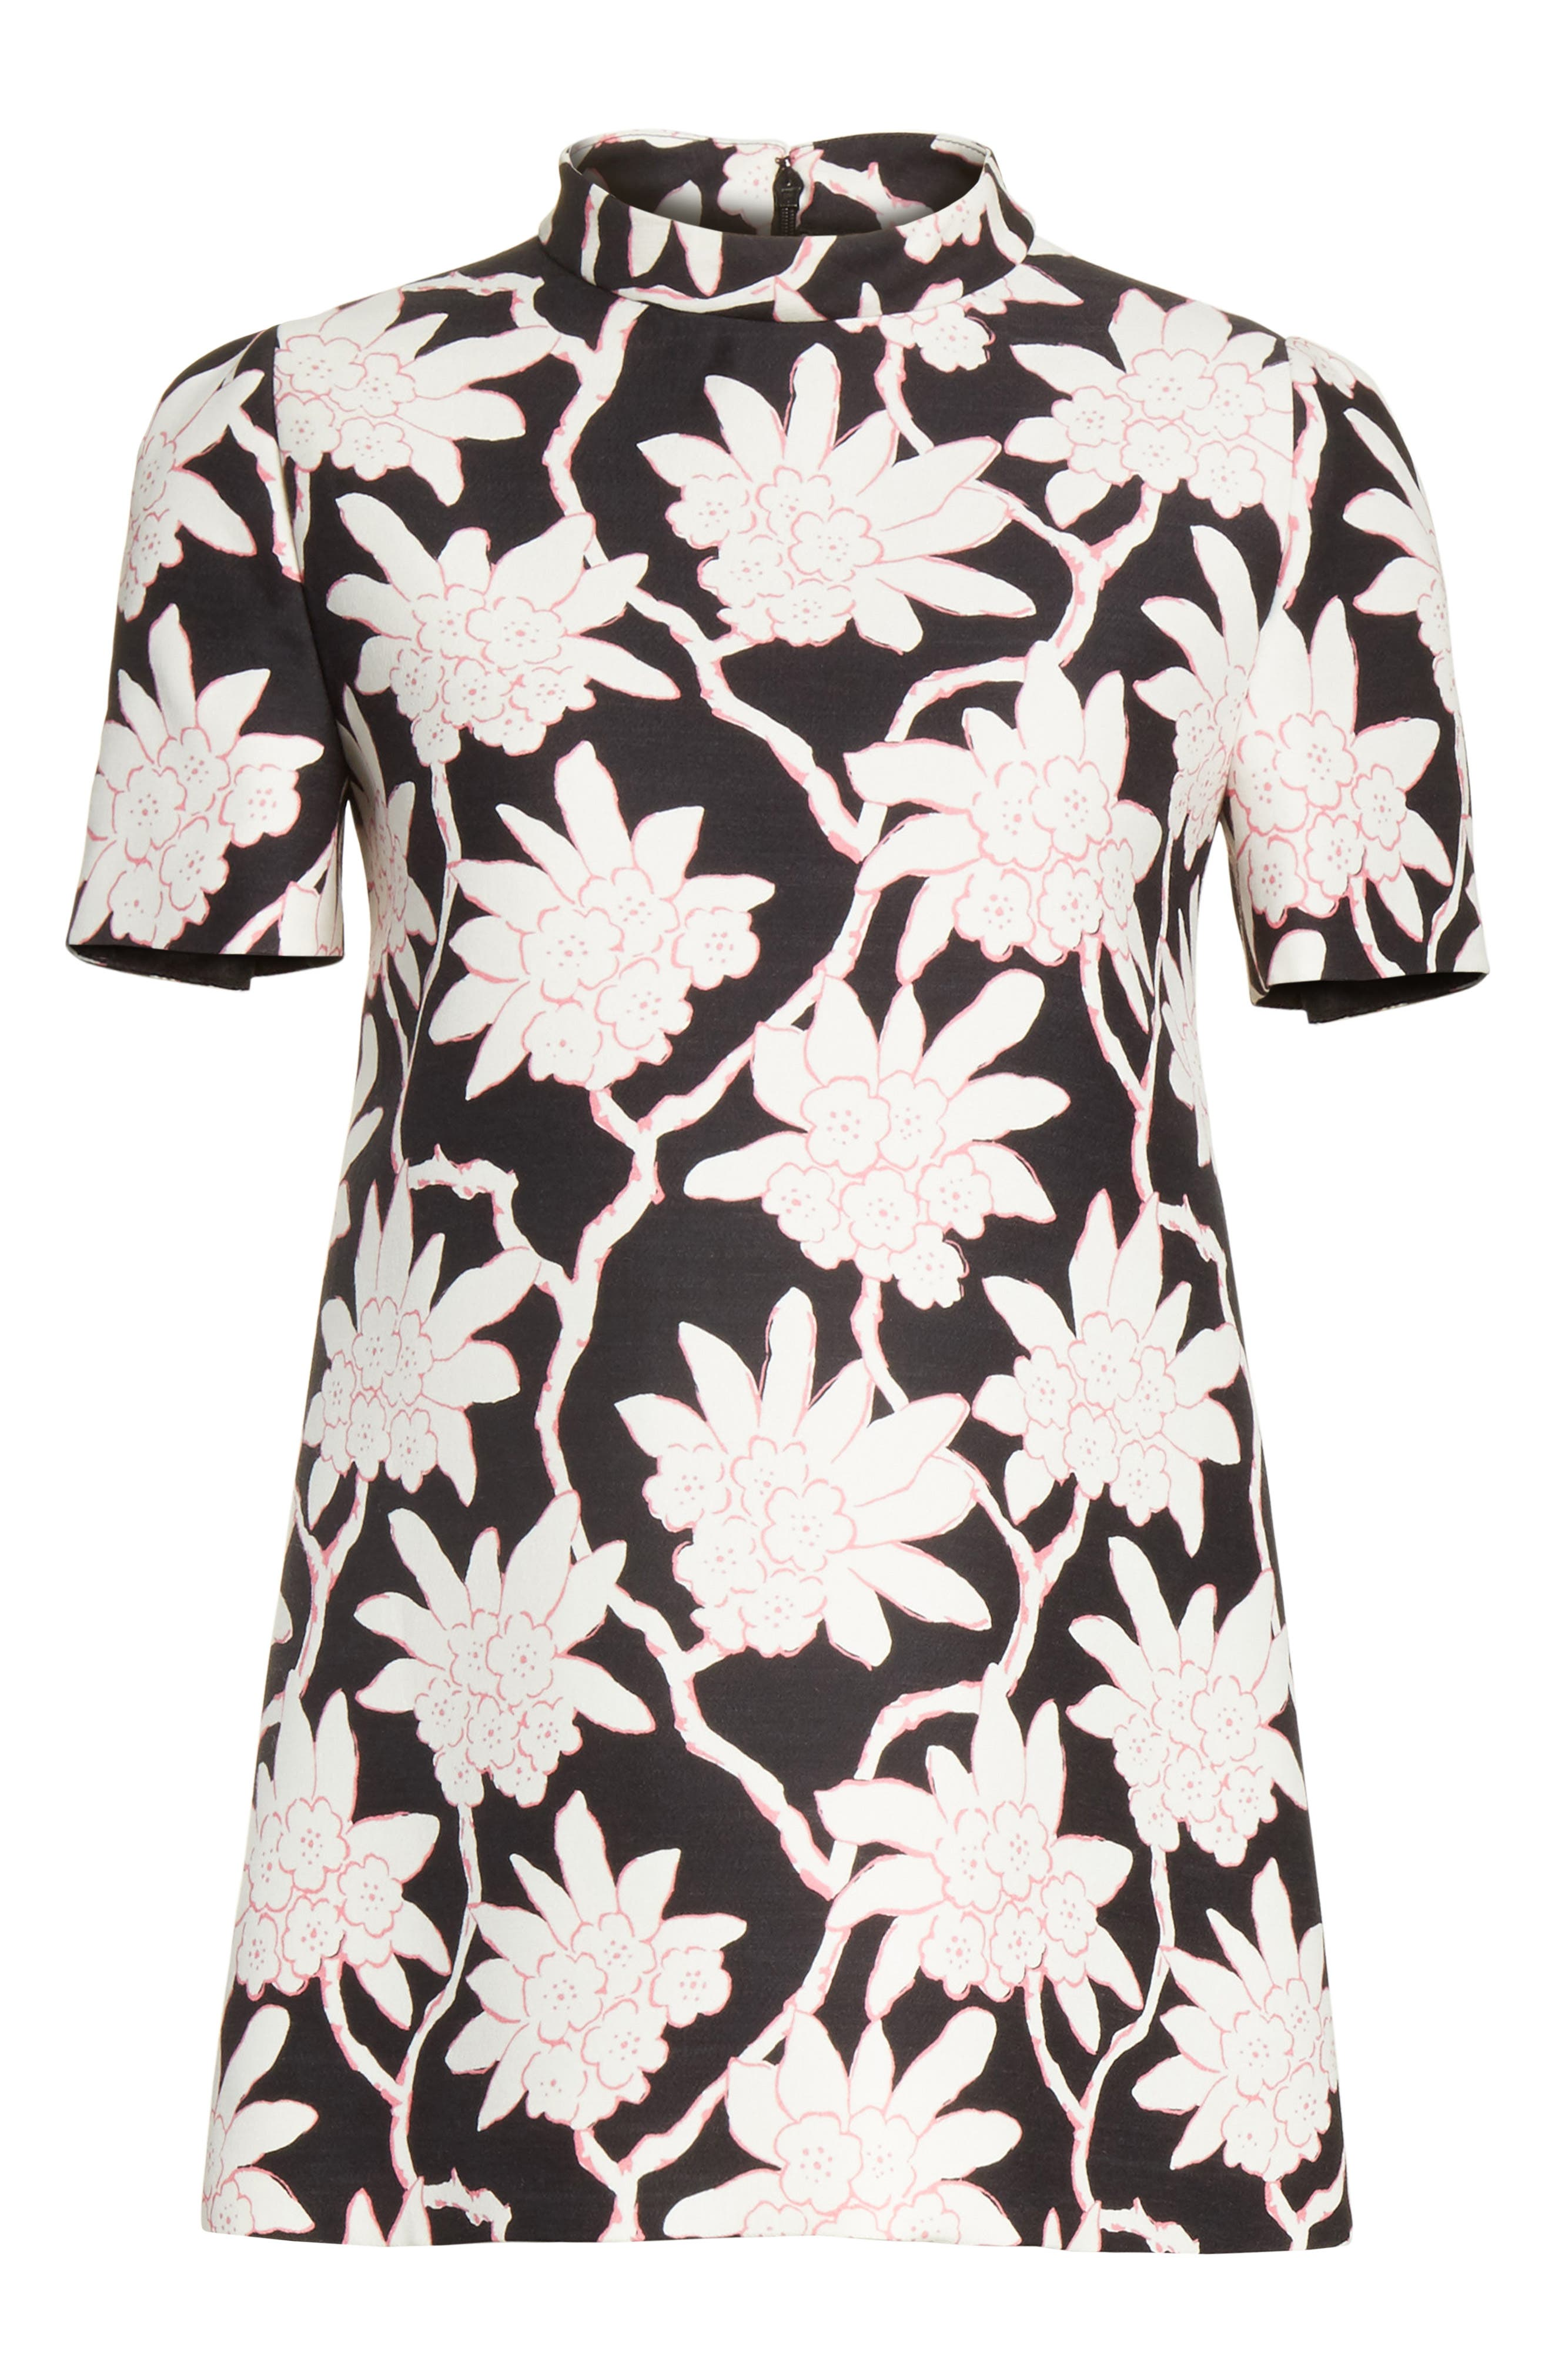 Rhododendron Print Wool & Silk Top,                             Alternate thumbnail 6, color,                             001